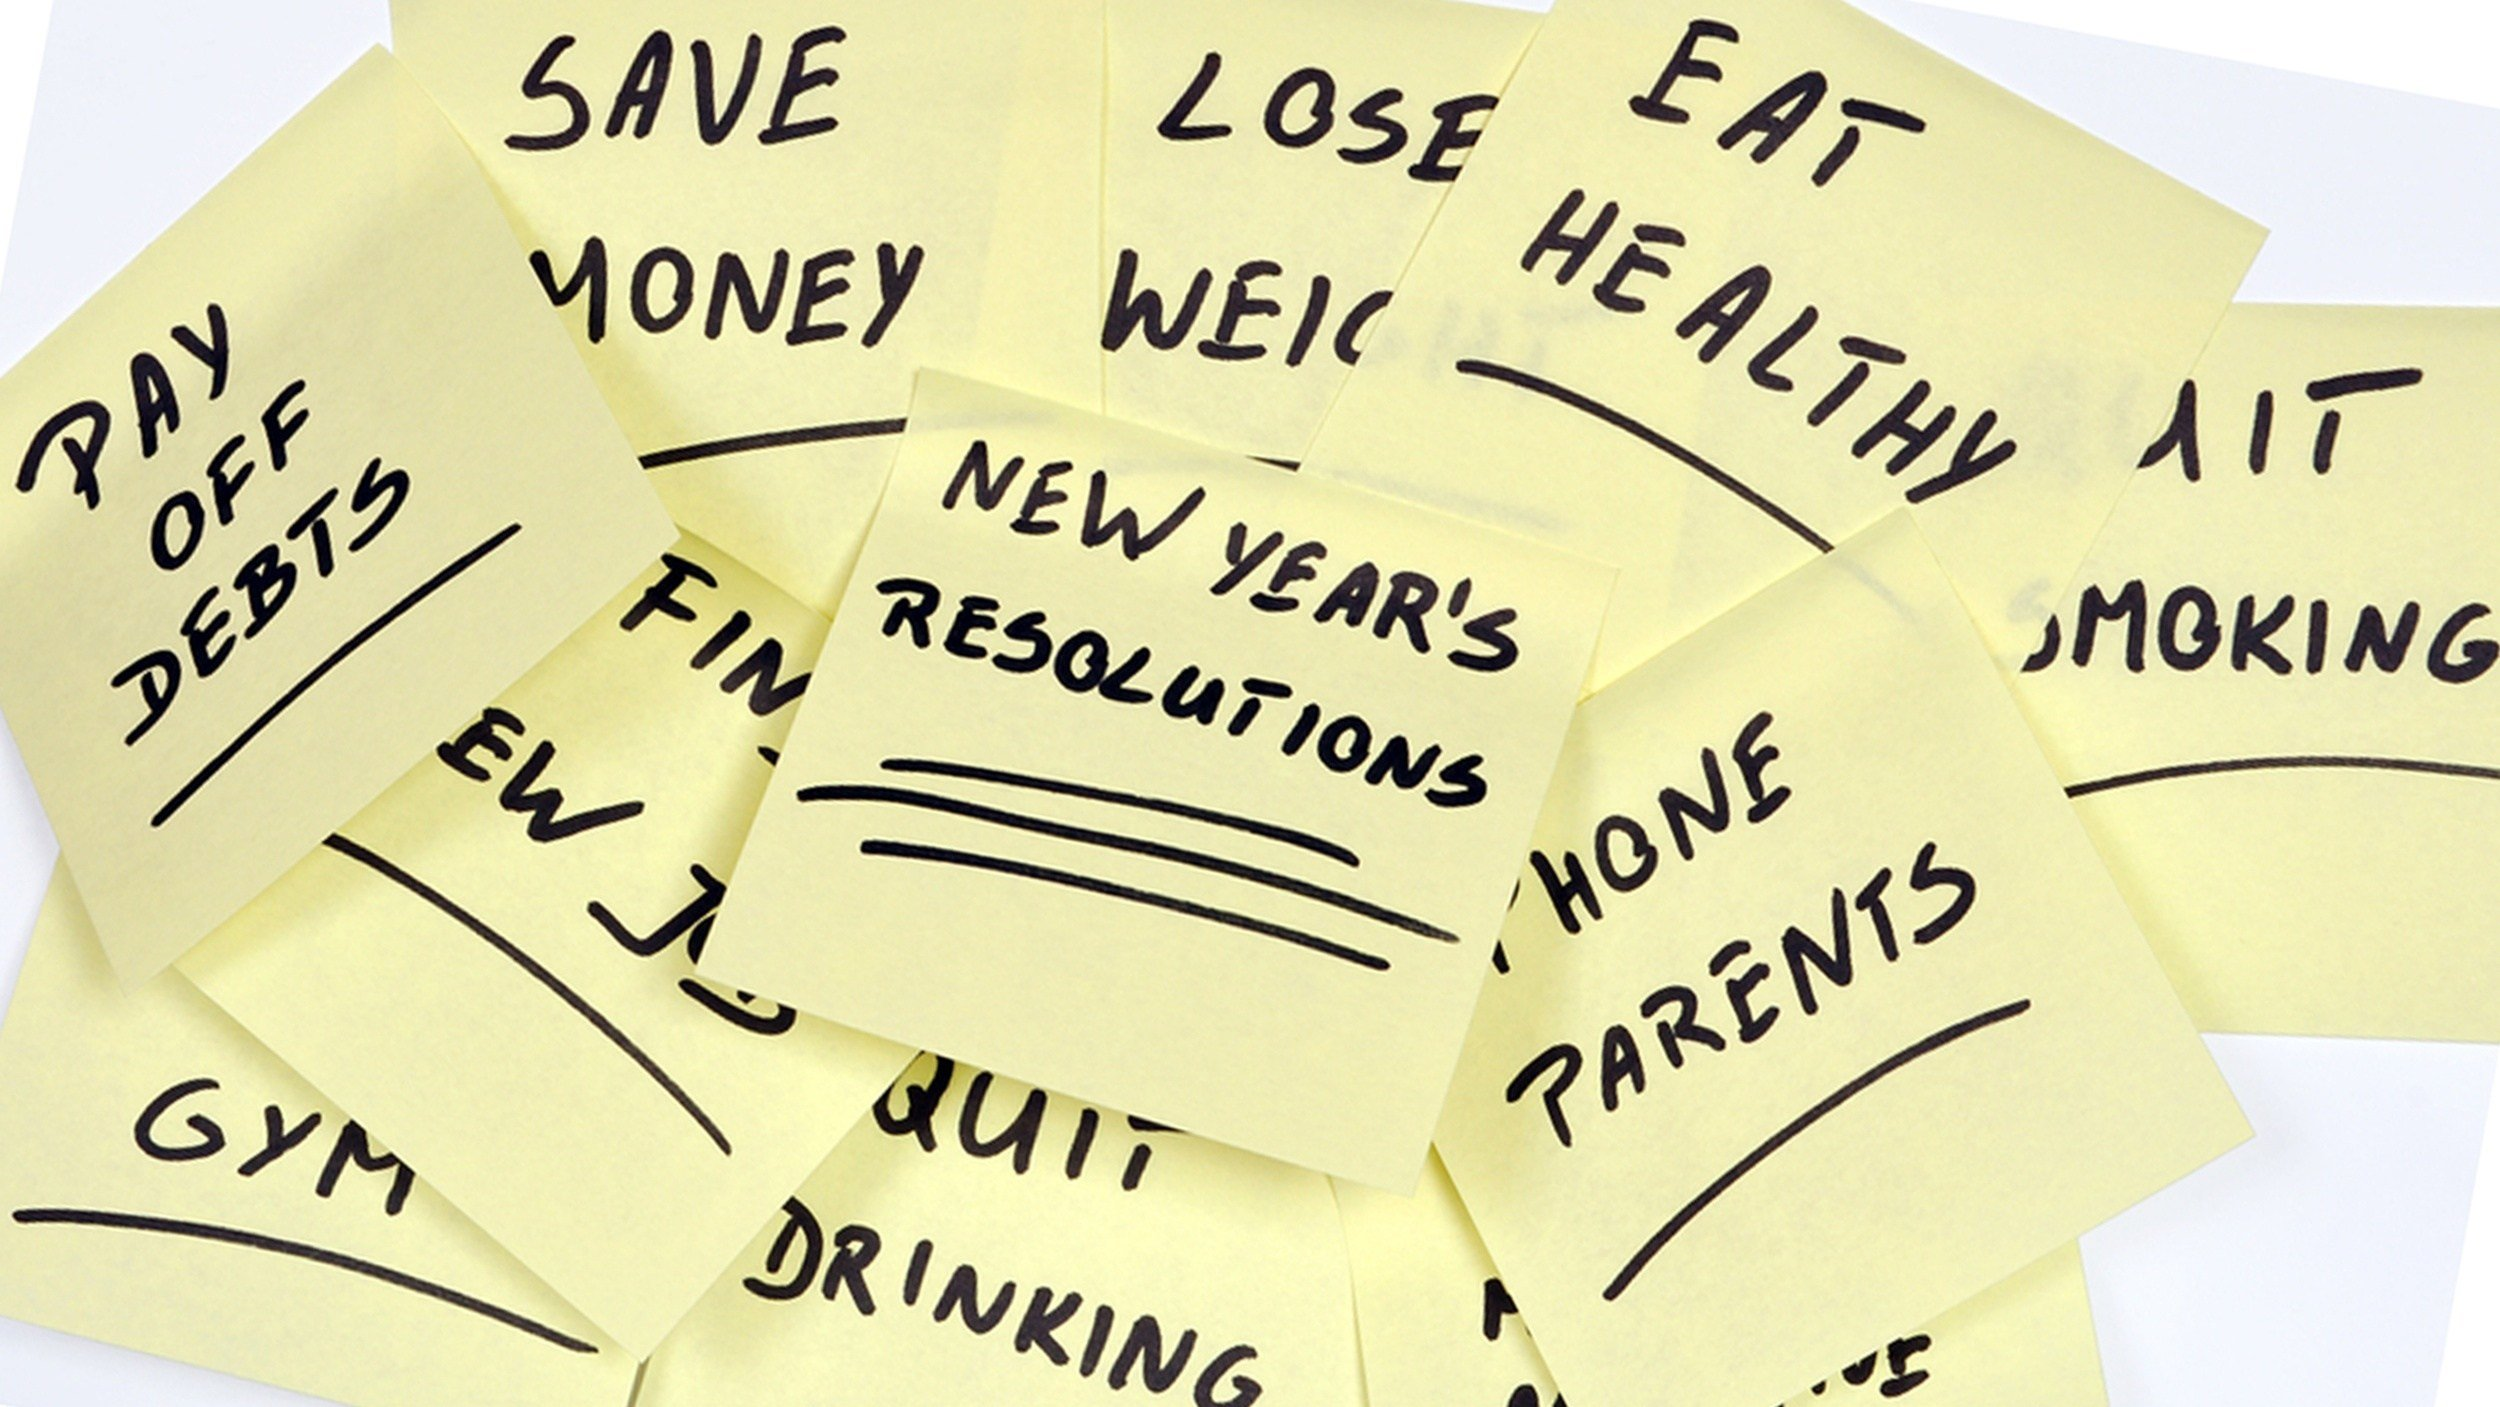 New Years Resolution Revolution